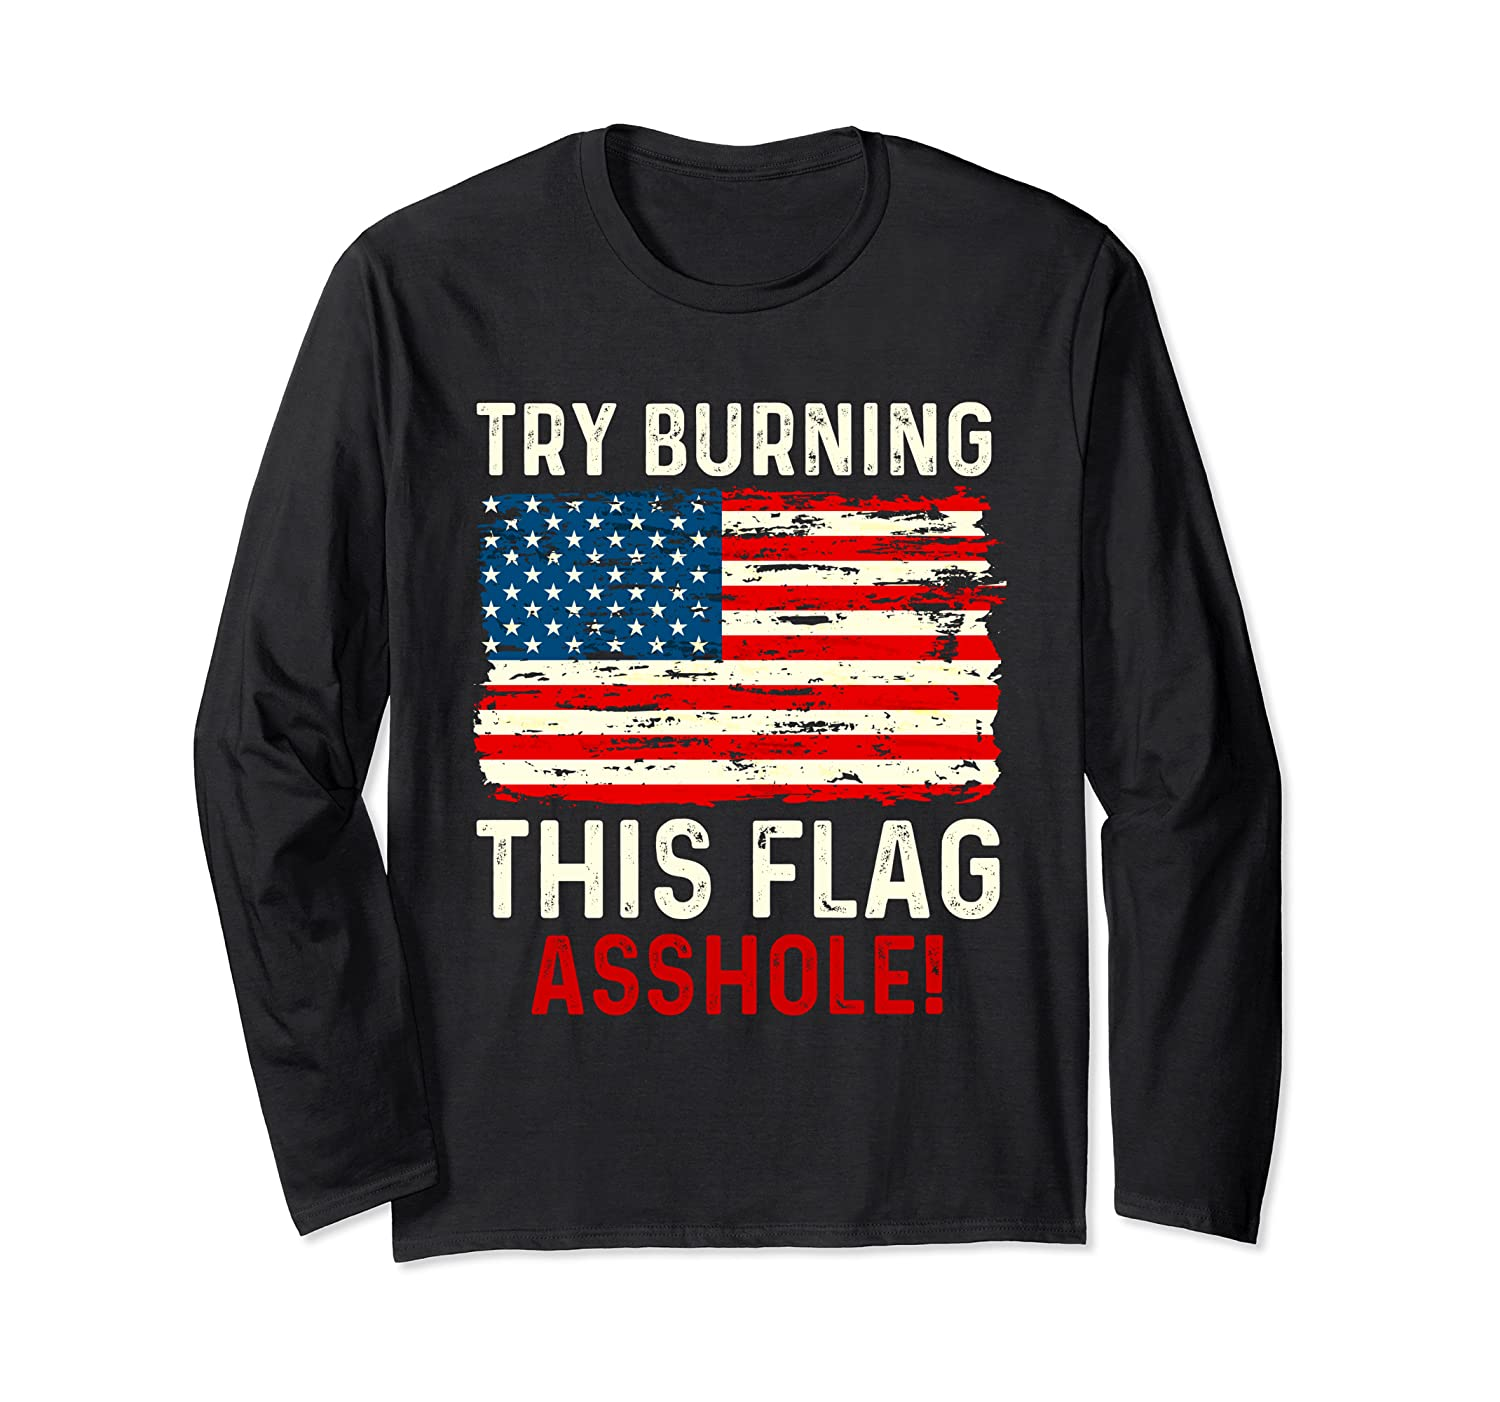 Try Burning This American Flag Asshole Funny Merica T-shirt